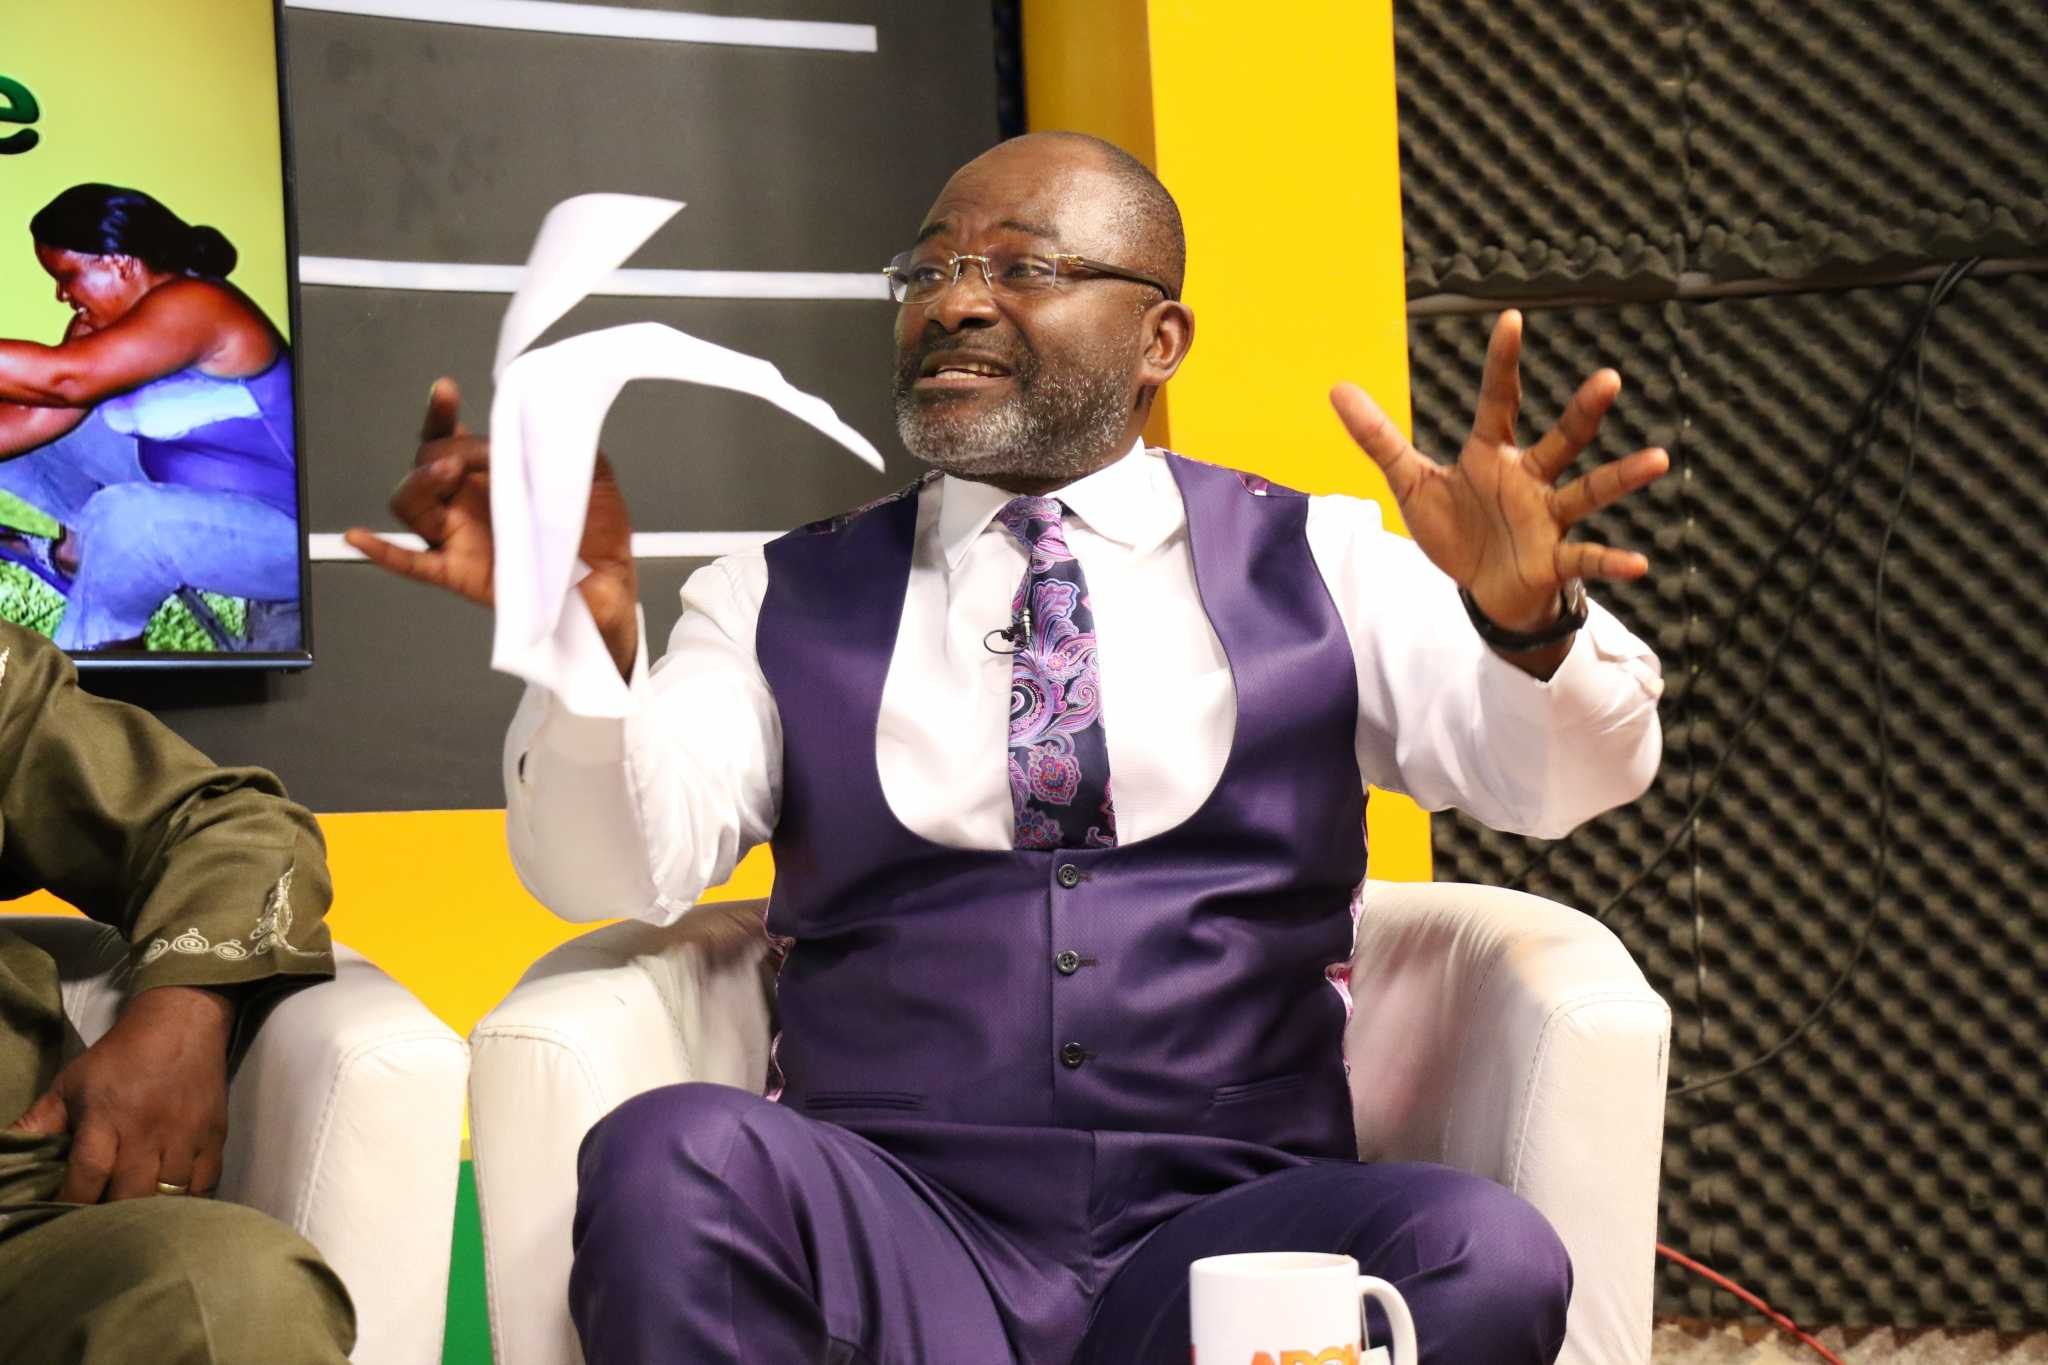 HOT VIDEO: Ken Agyapong exposes Anas' modes of operation